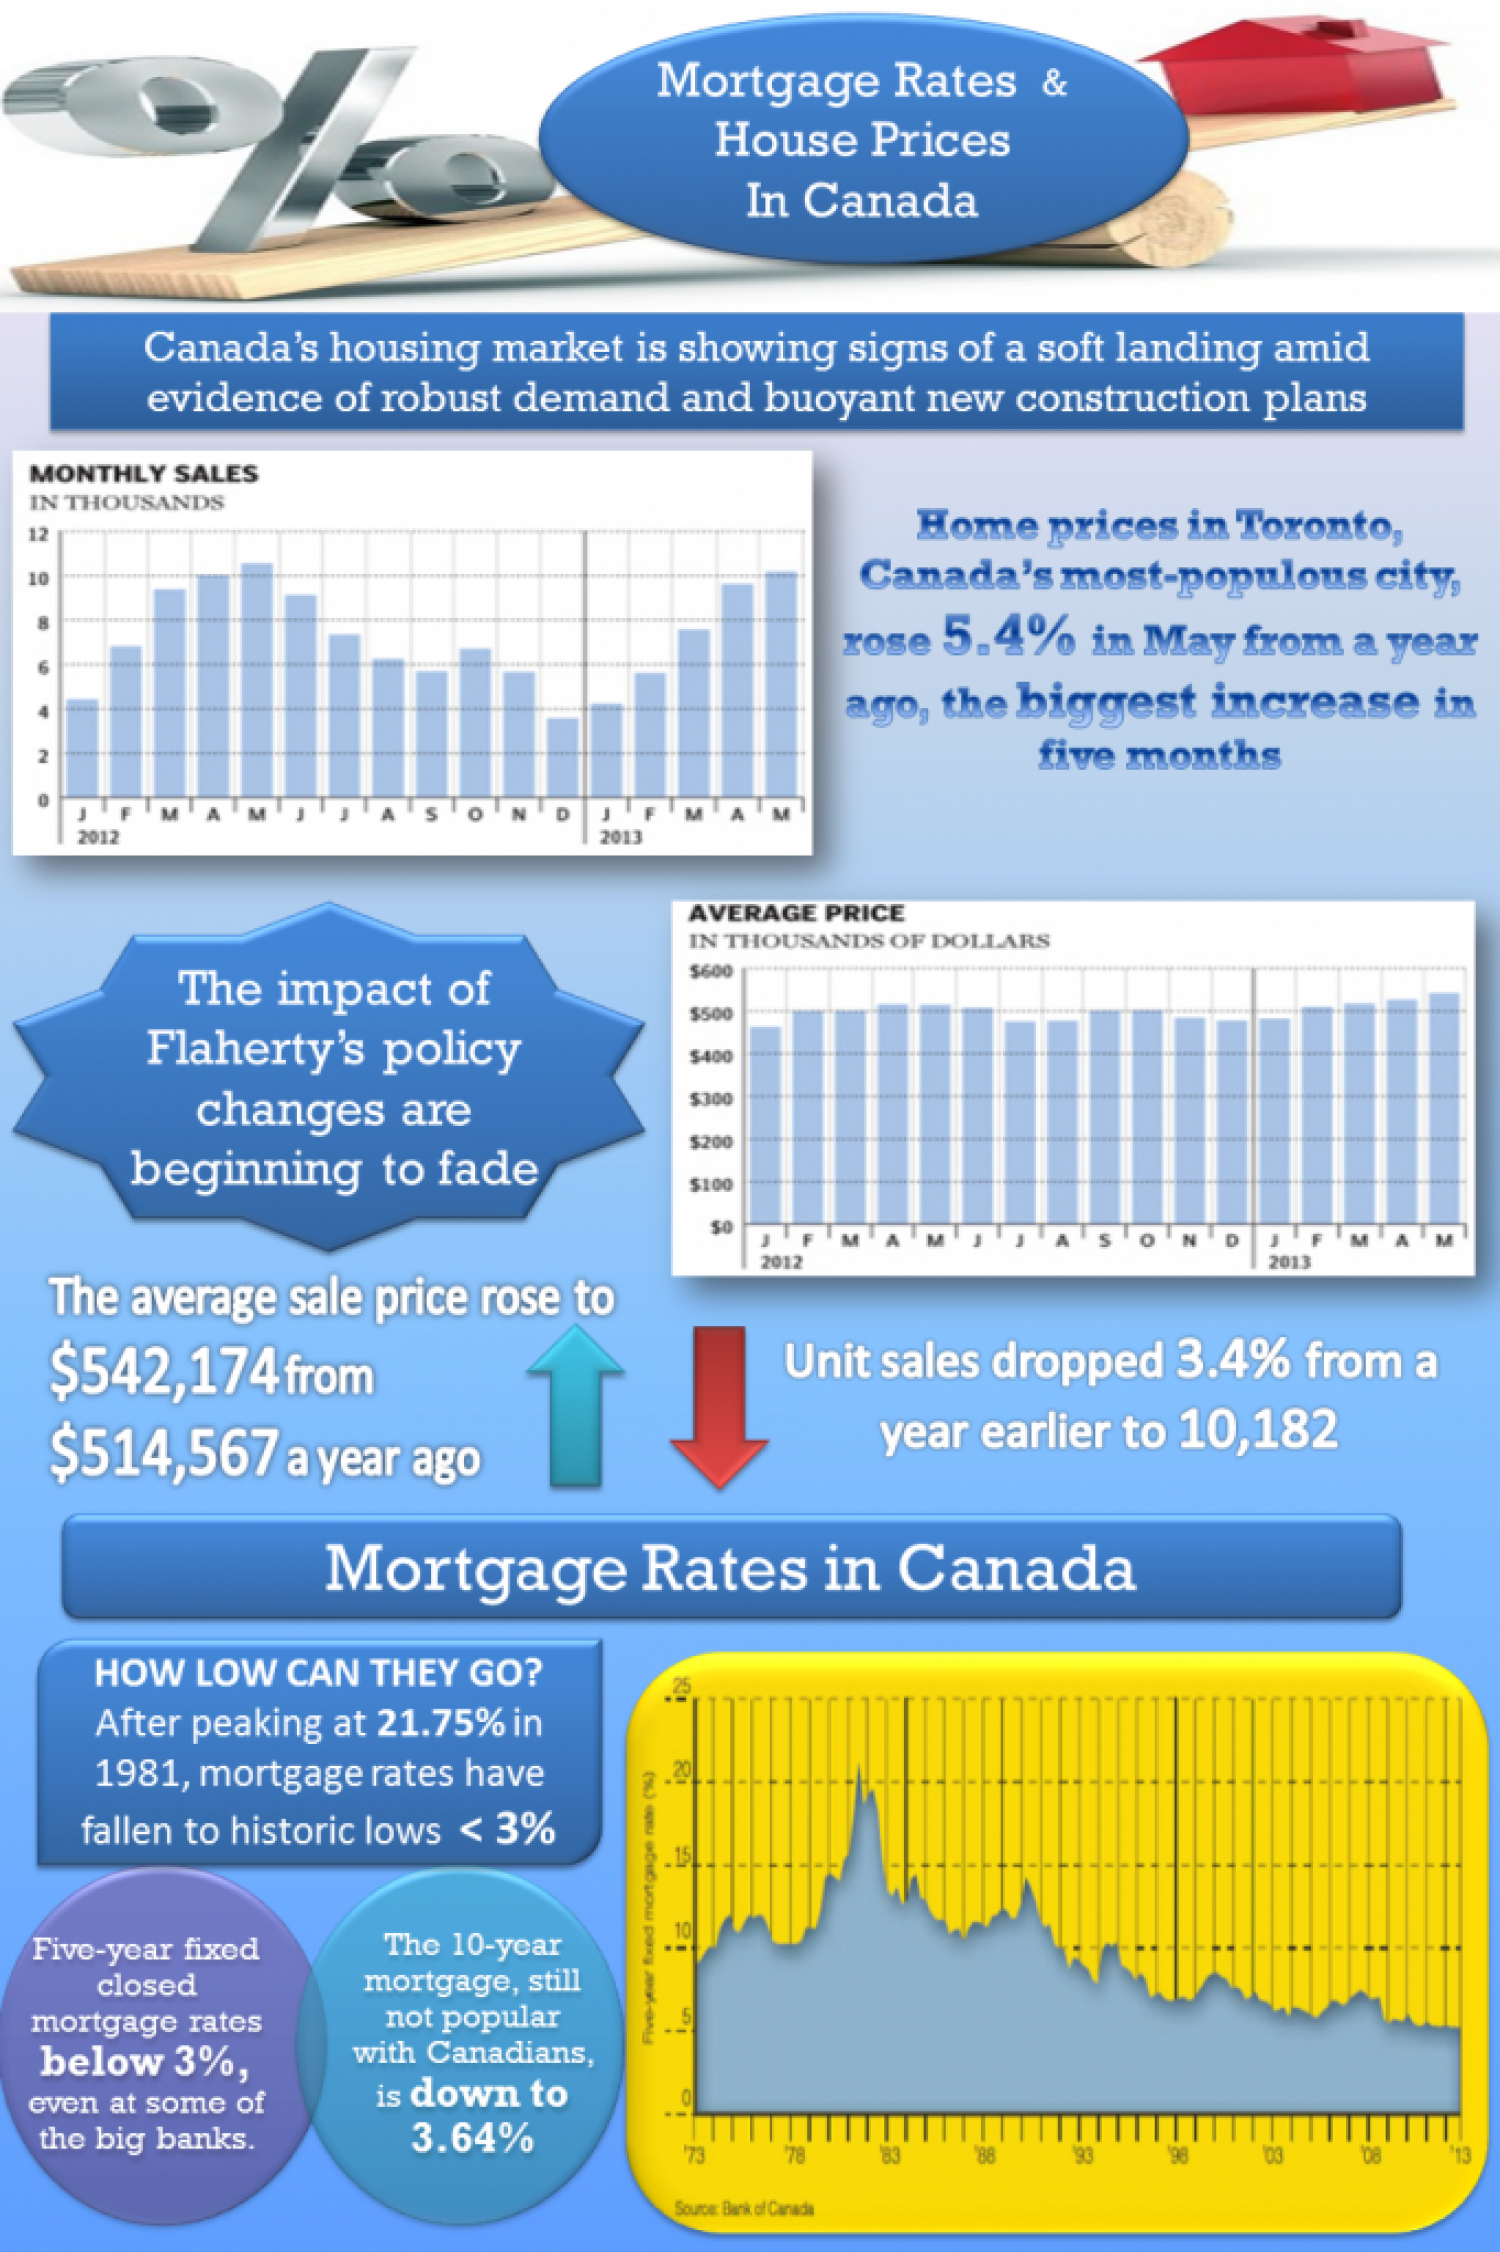 Mortgage Rates & House Prices in Canada Infographic